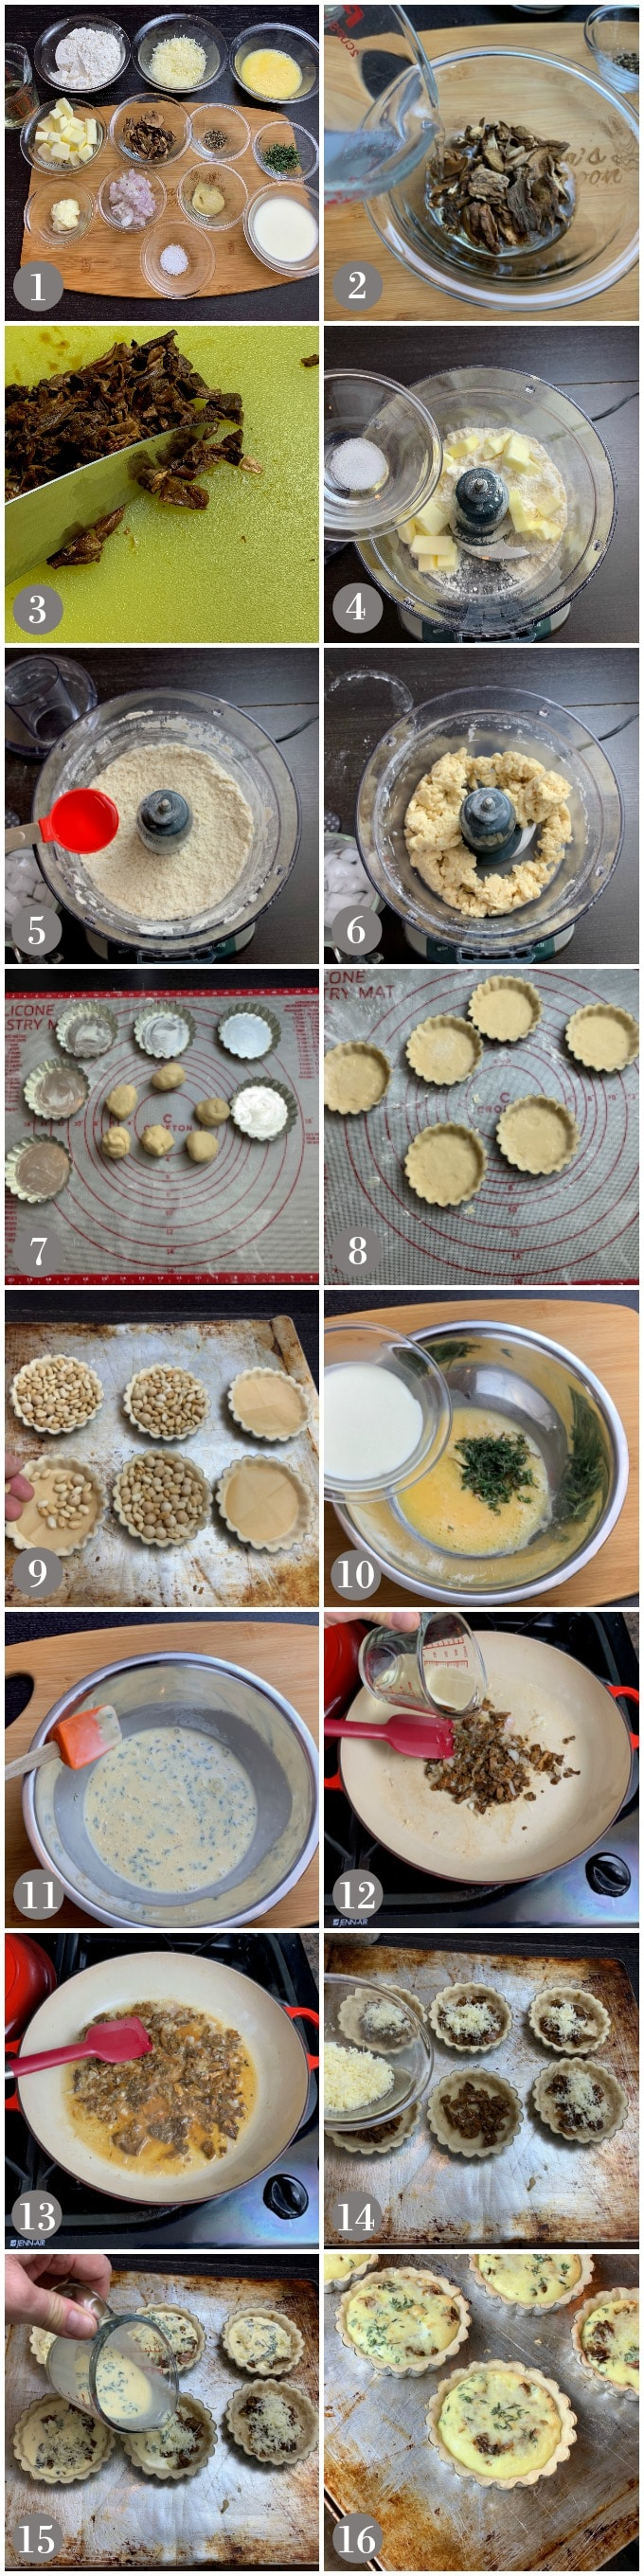 A collage of photos showing steps to make the dough, filling and bake wild mushroom and gruyere mini quiches.